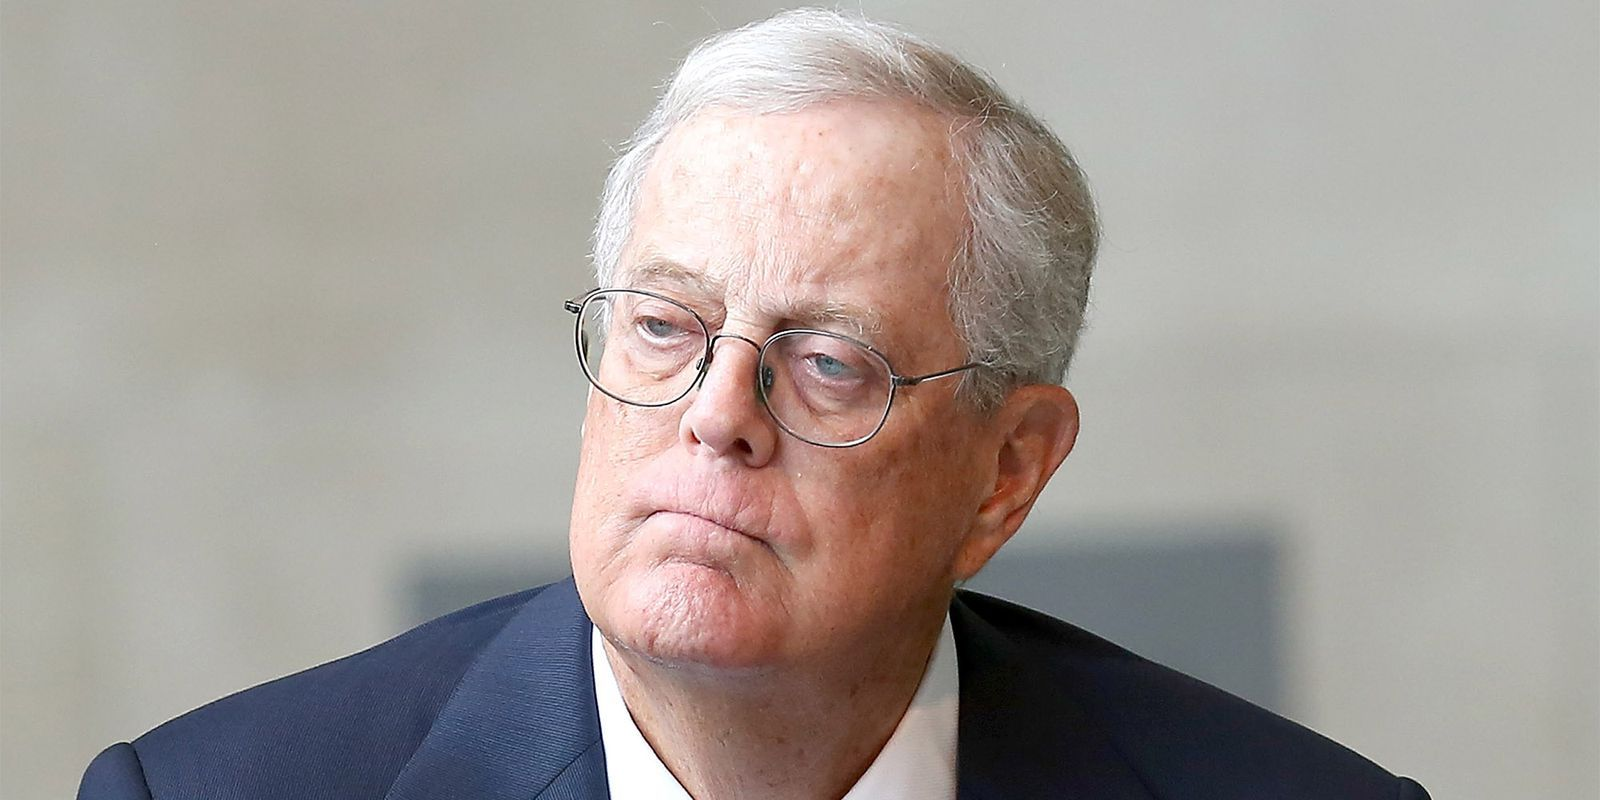 Kochs wand is the worst enemy of man